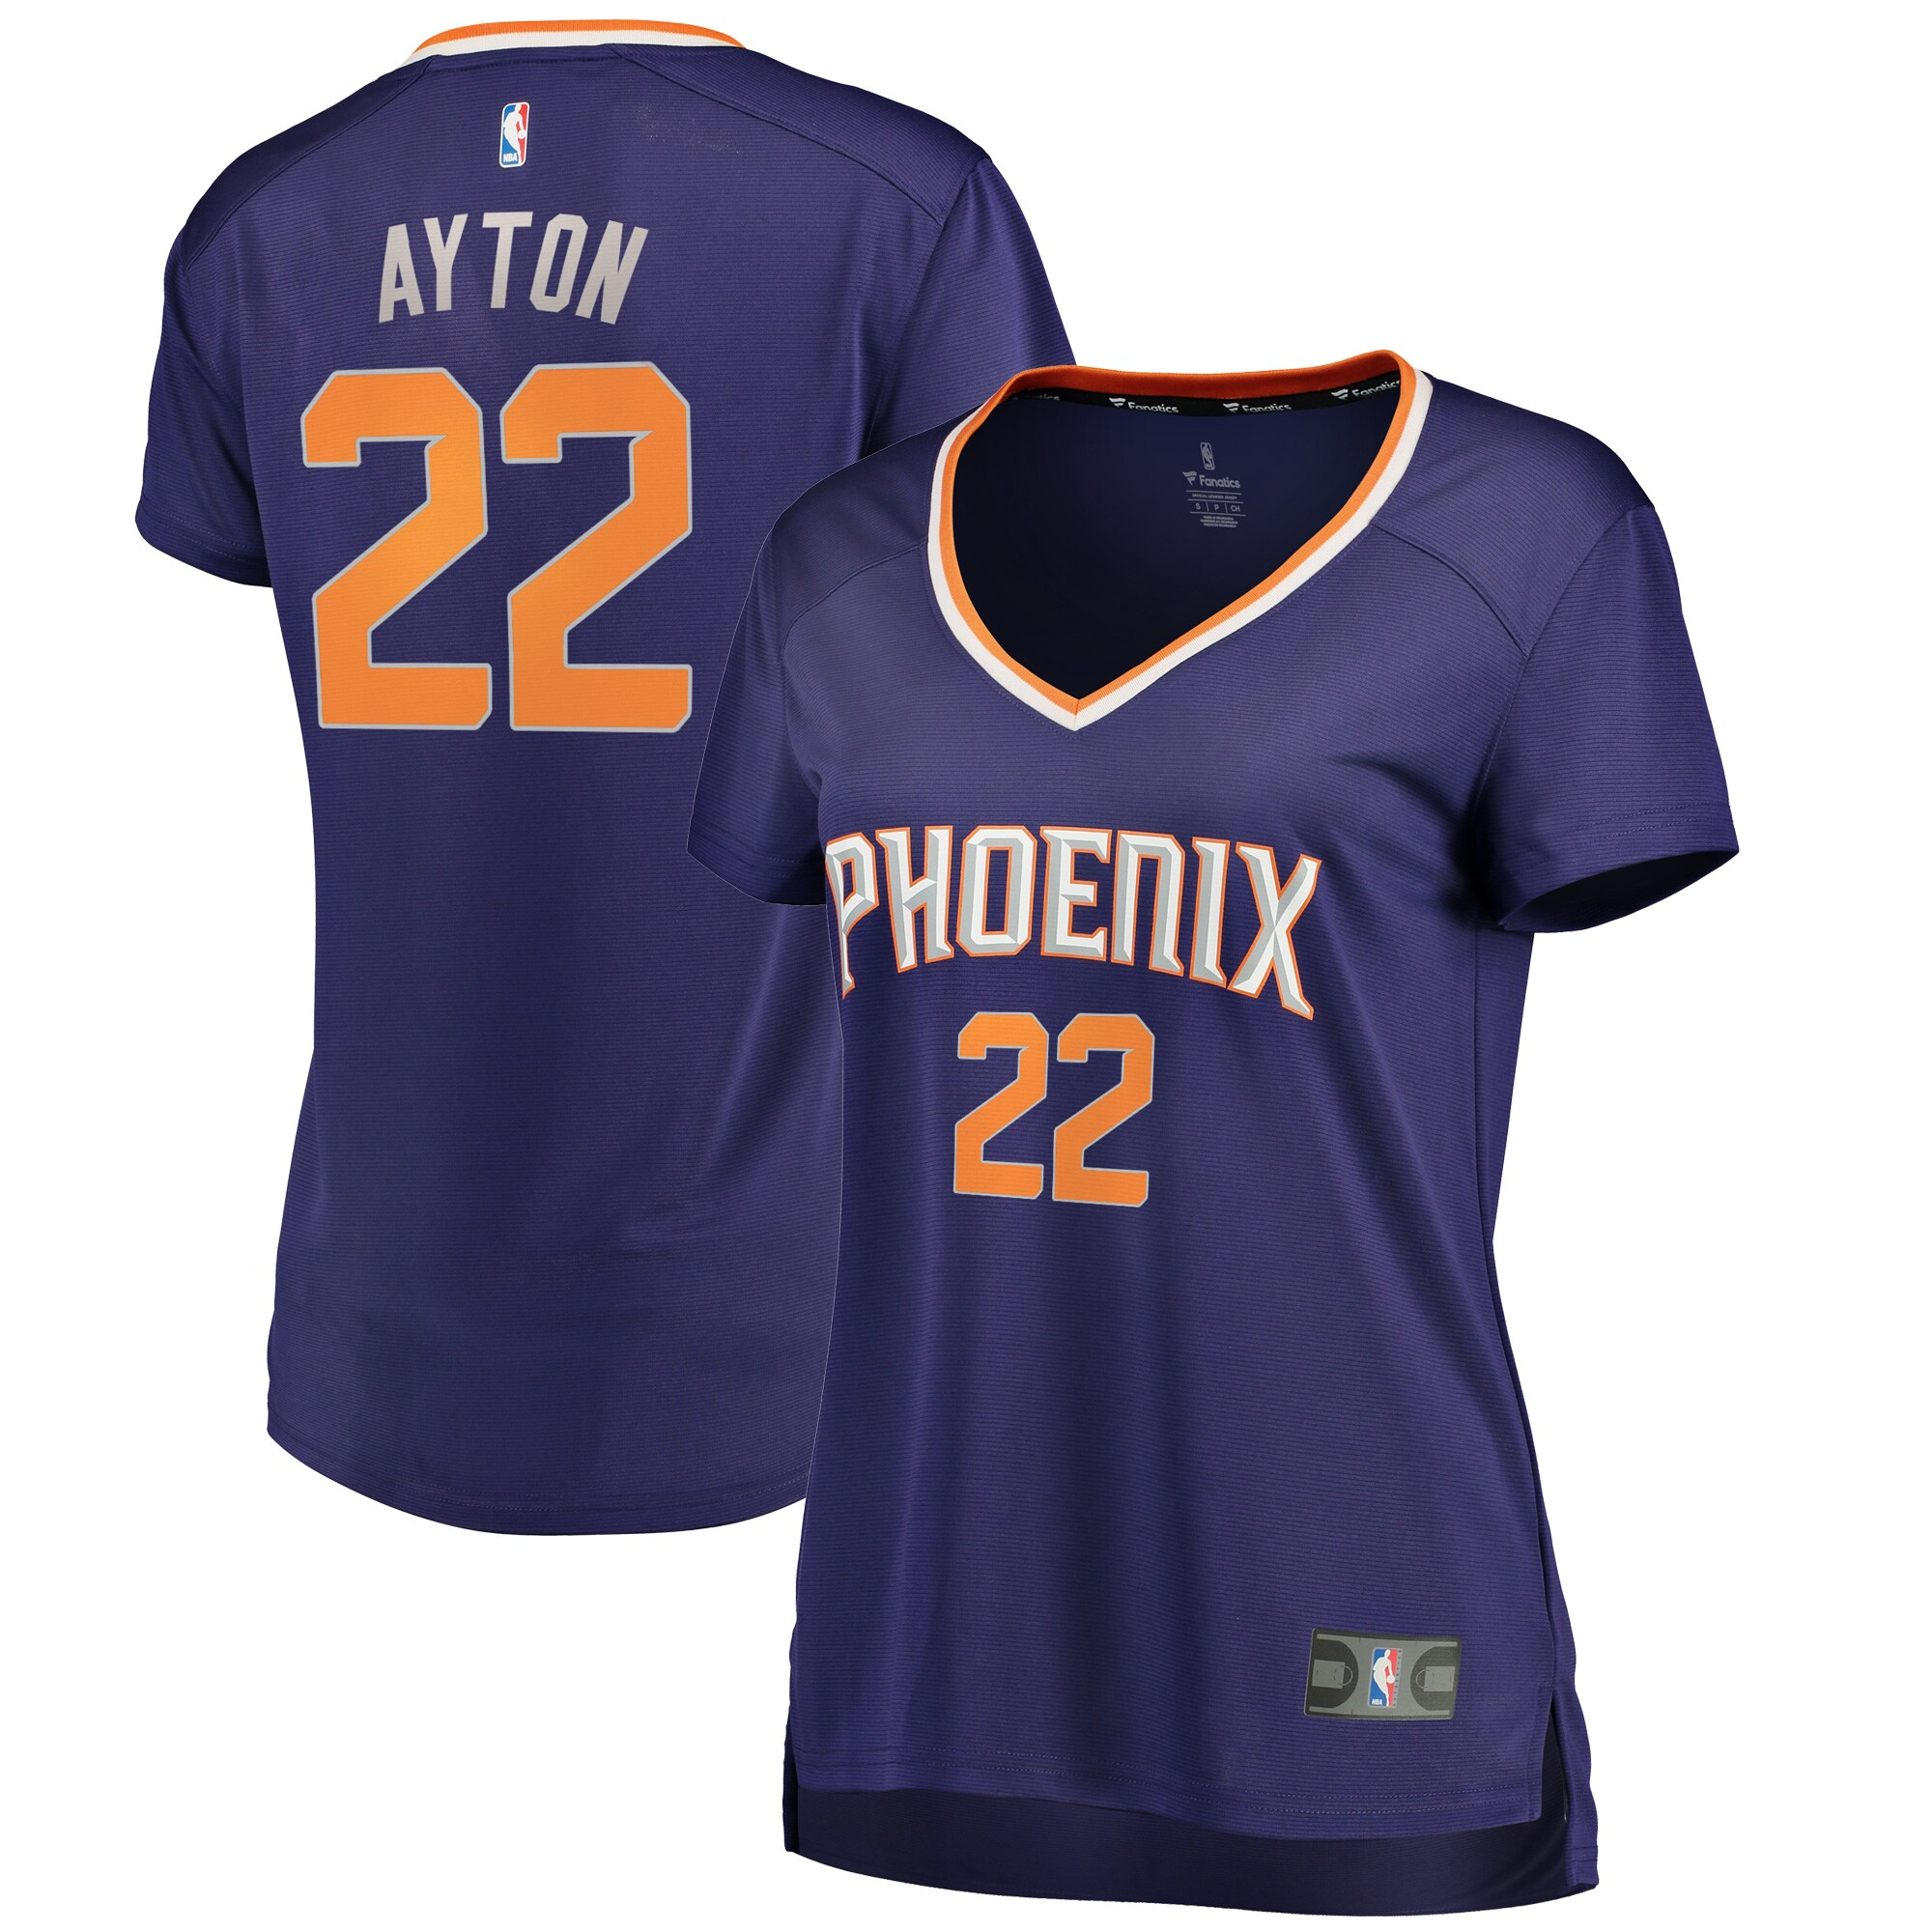 DeAndre Ayton Phoenix Suns Fanatics Branded Women's Fast Break Replica Jersey Purple - Icon Edition